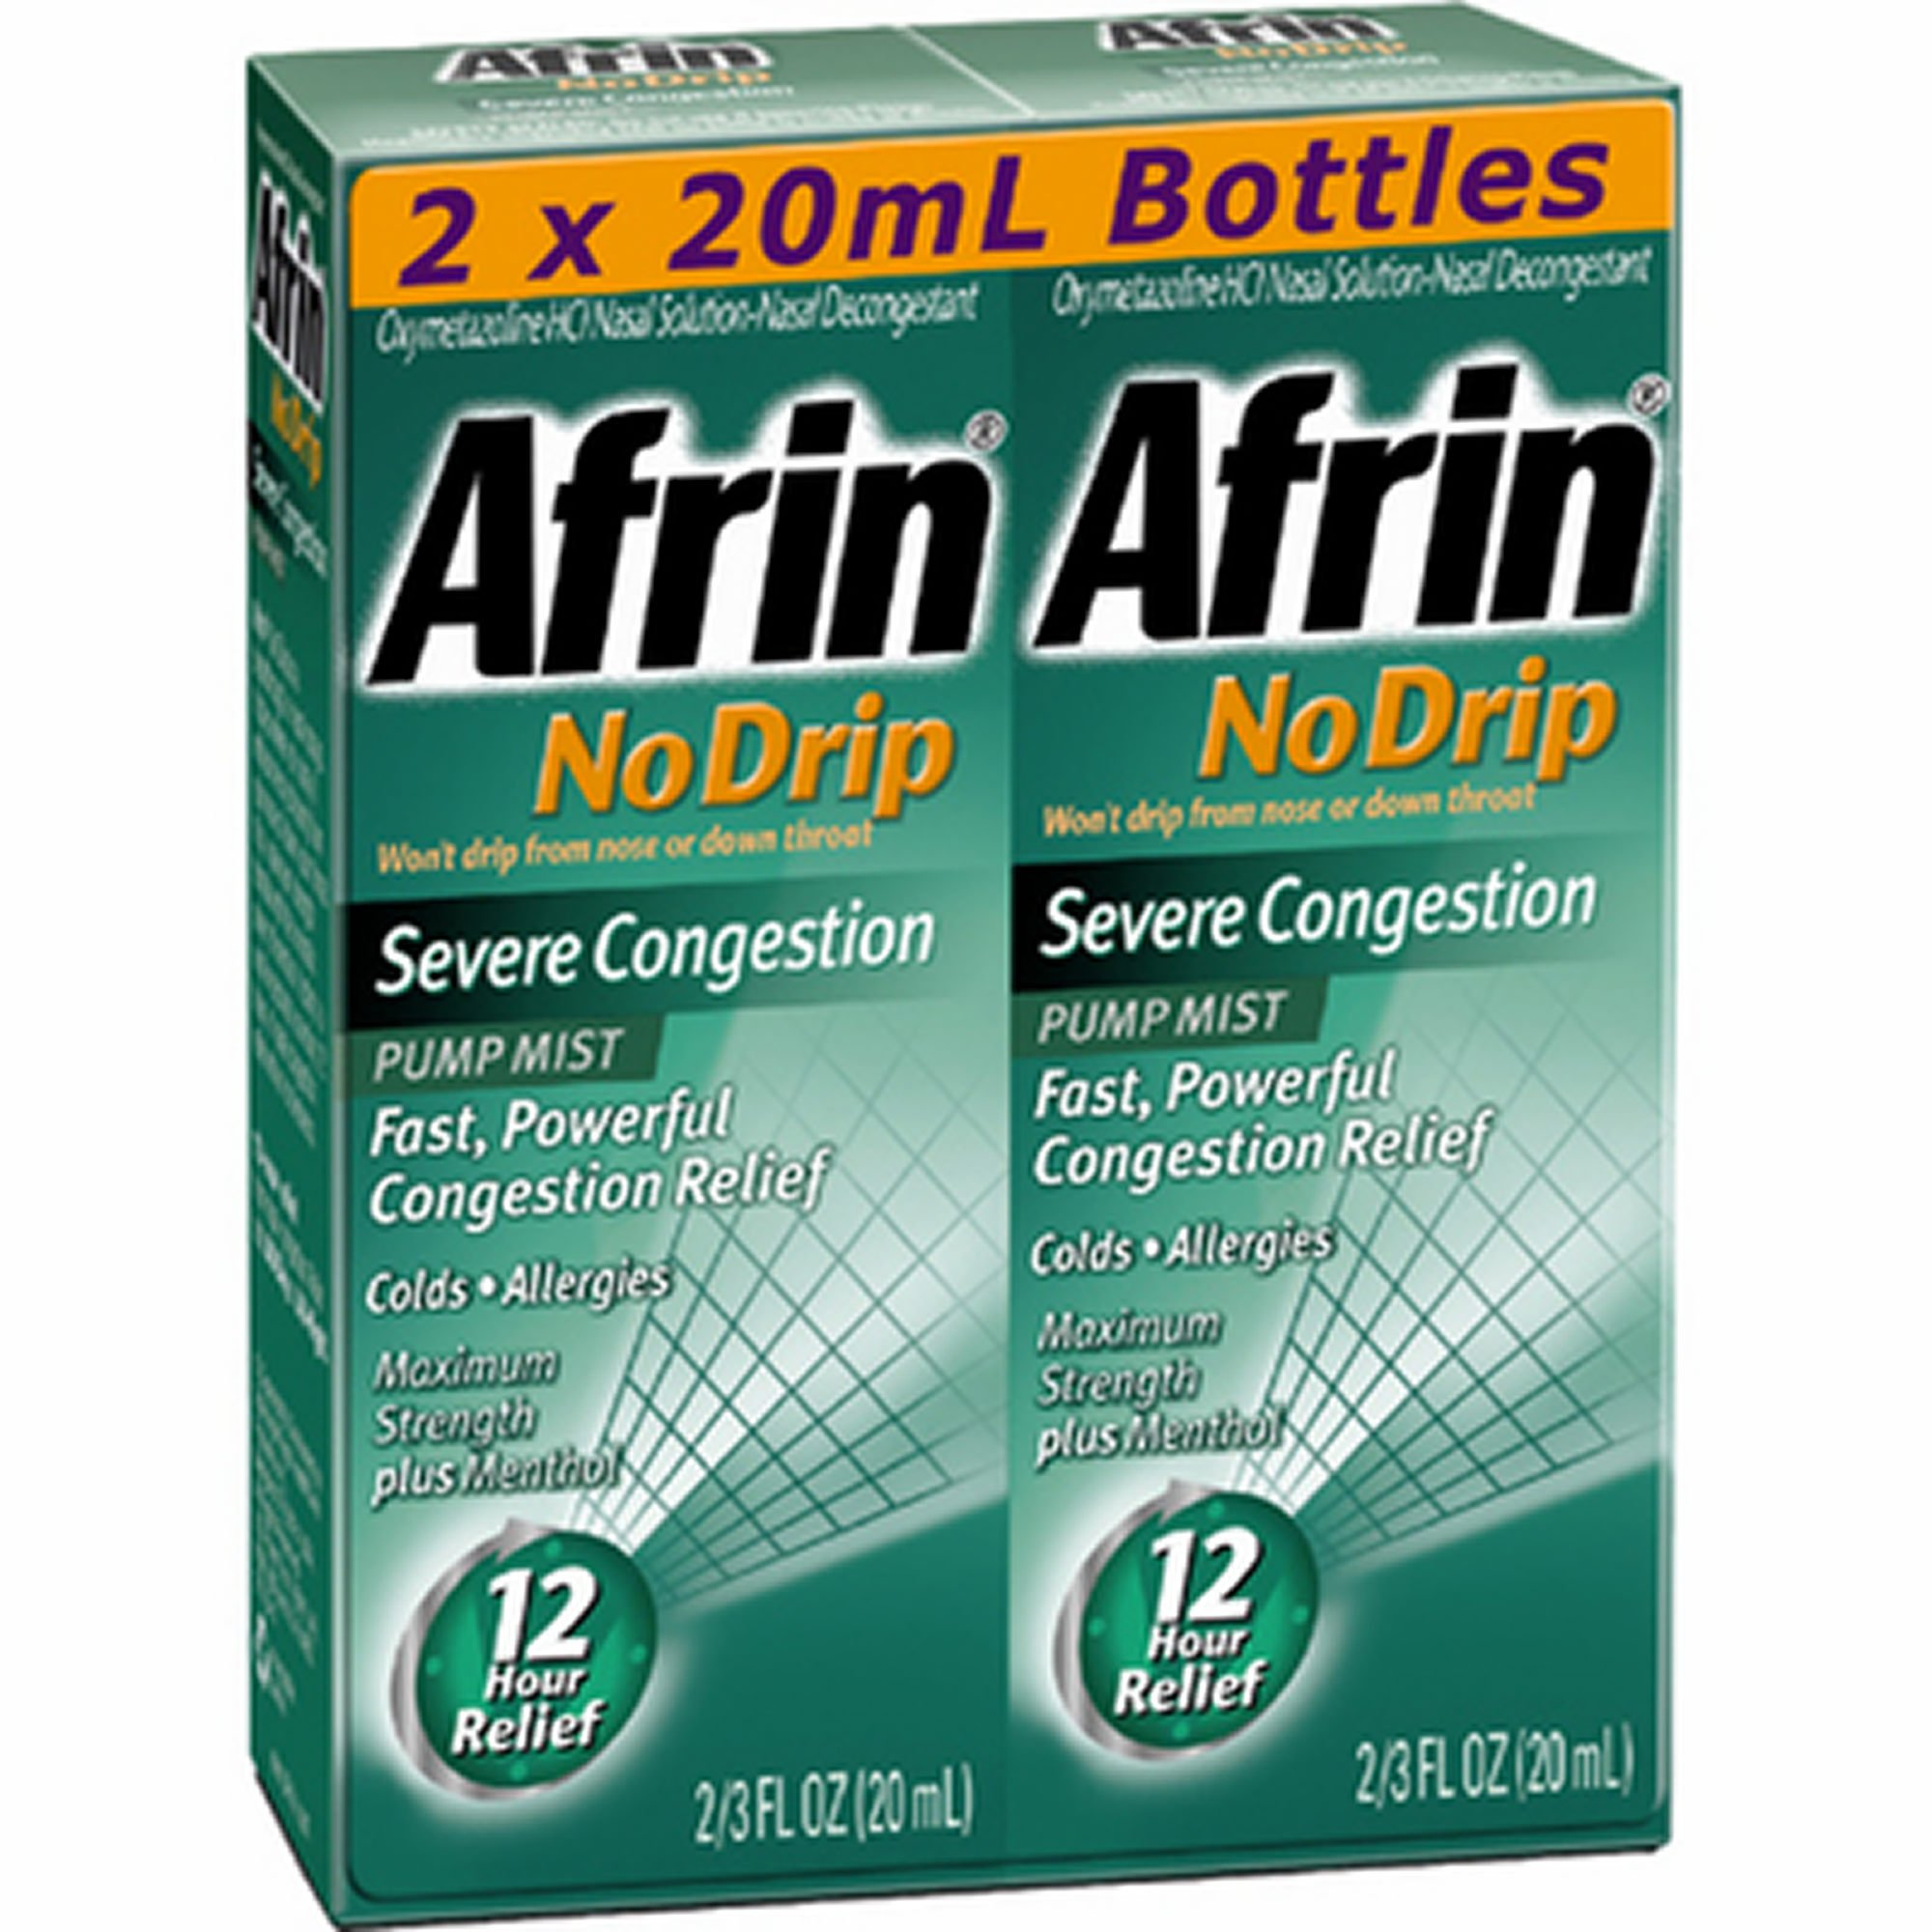 Afrin No Drip Severe Congestion Pump Mist, 2pk./3 fl. oz. (pack of 6) by Afrin